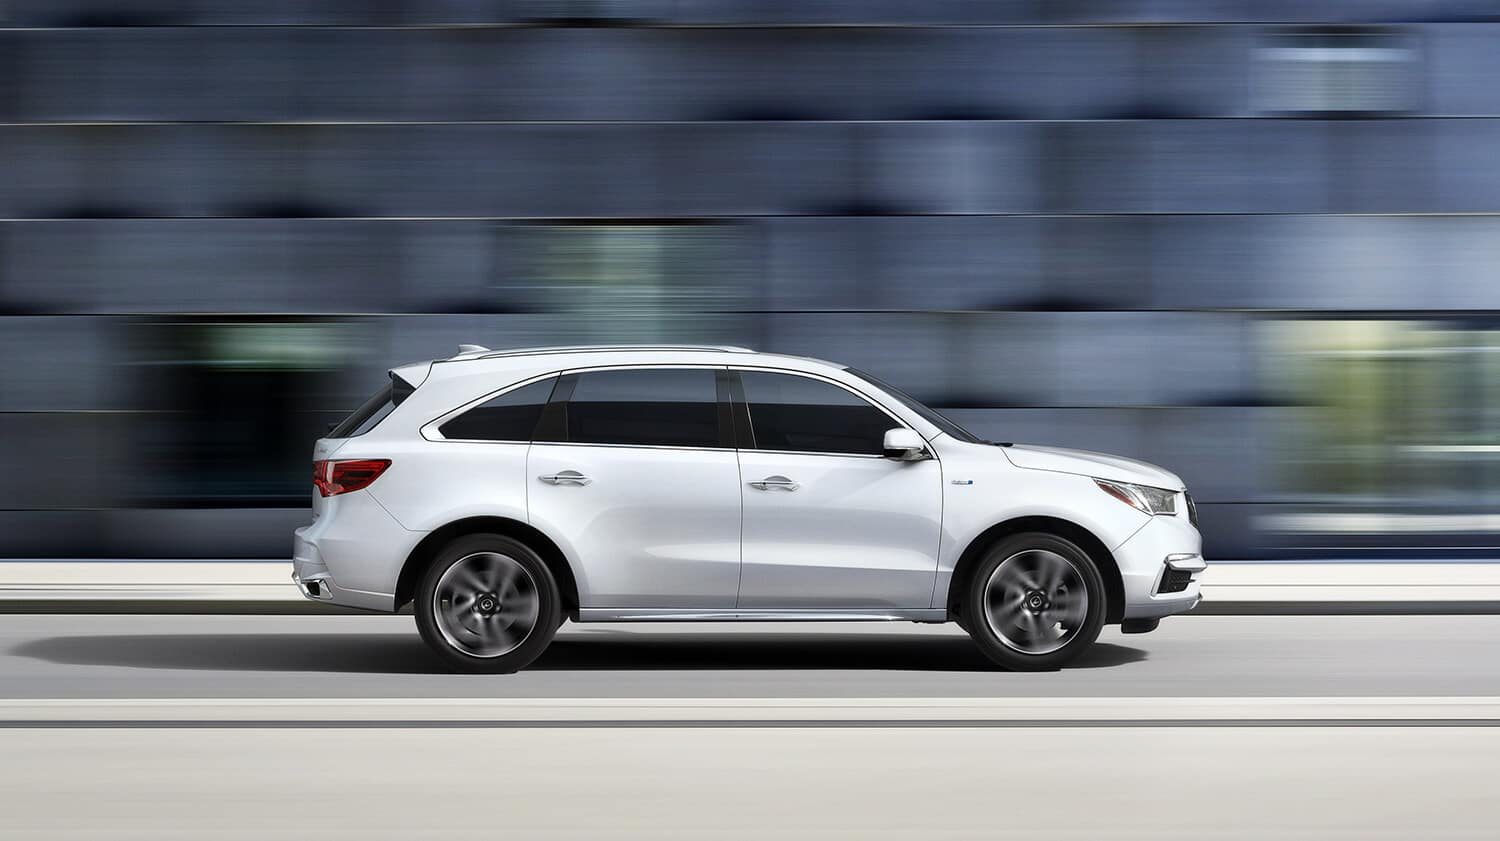 2019 Acura MDX Exterior Side Profile Drive